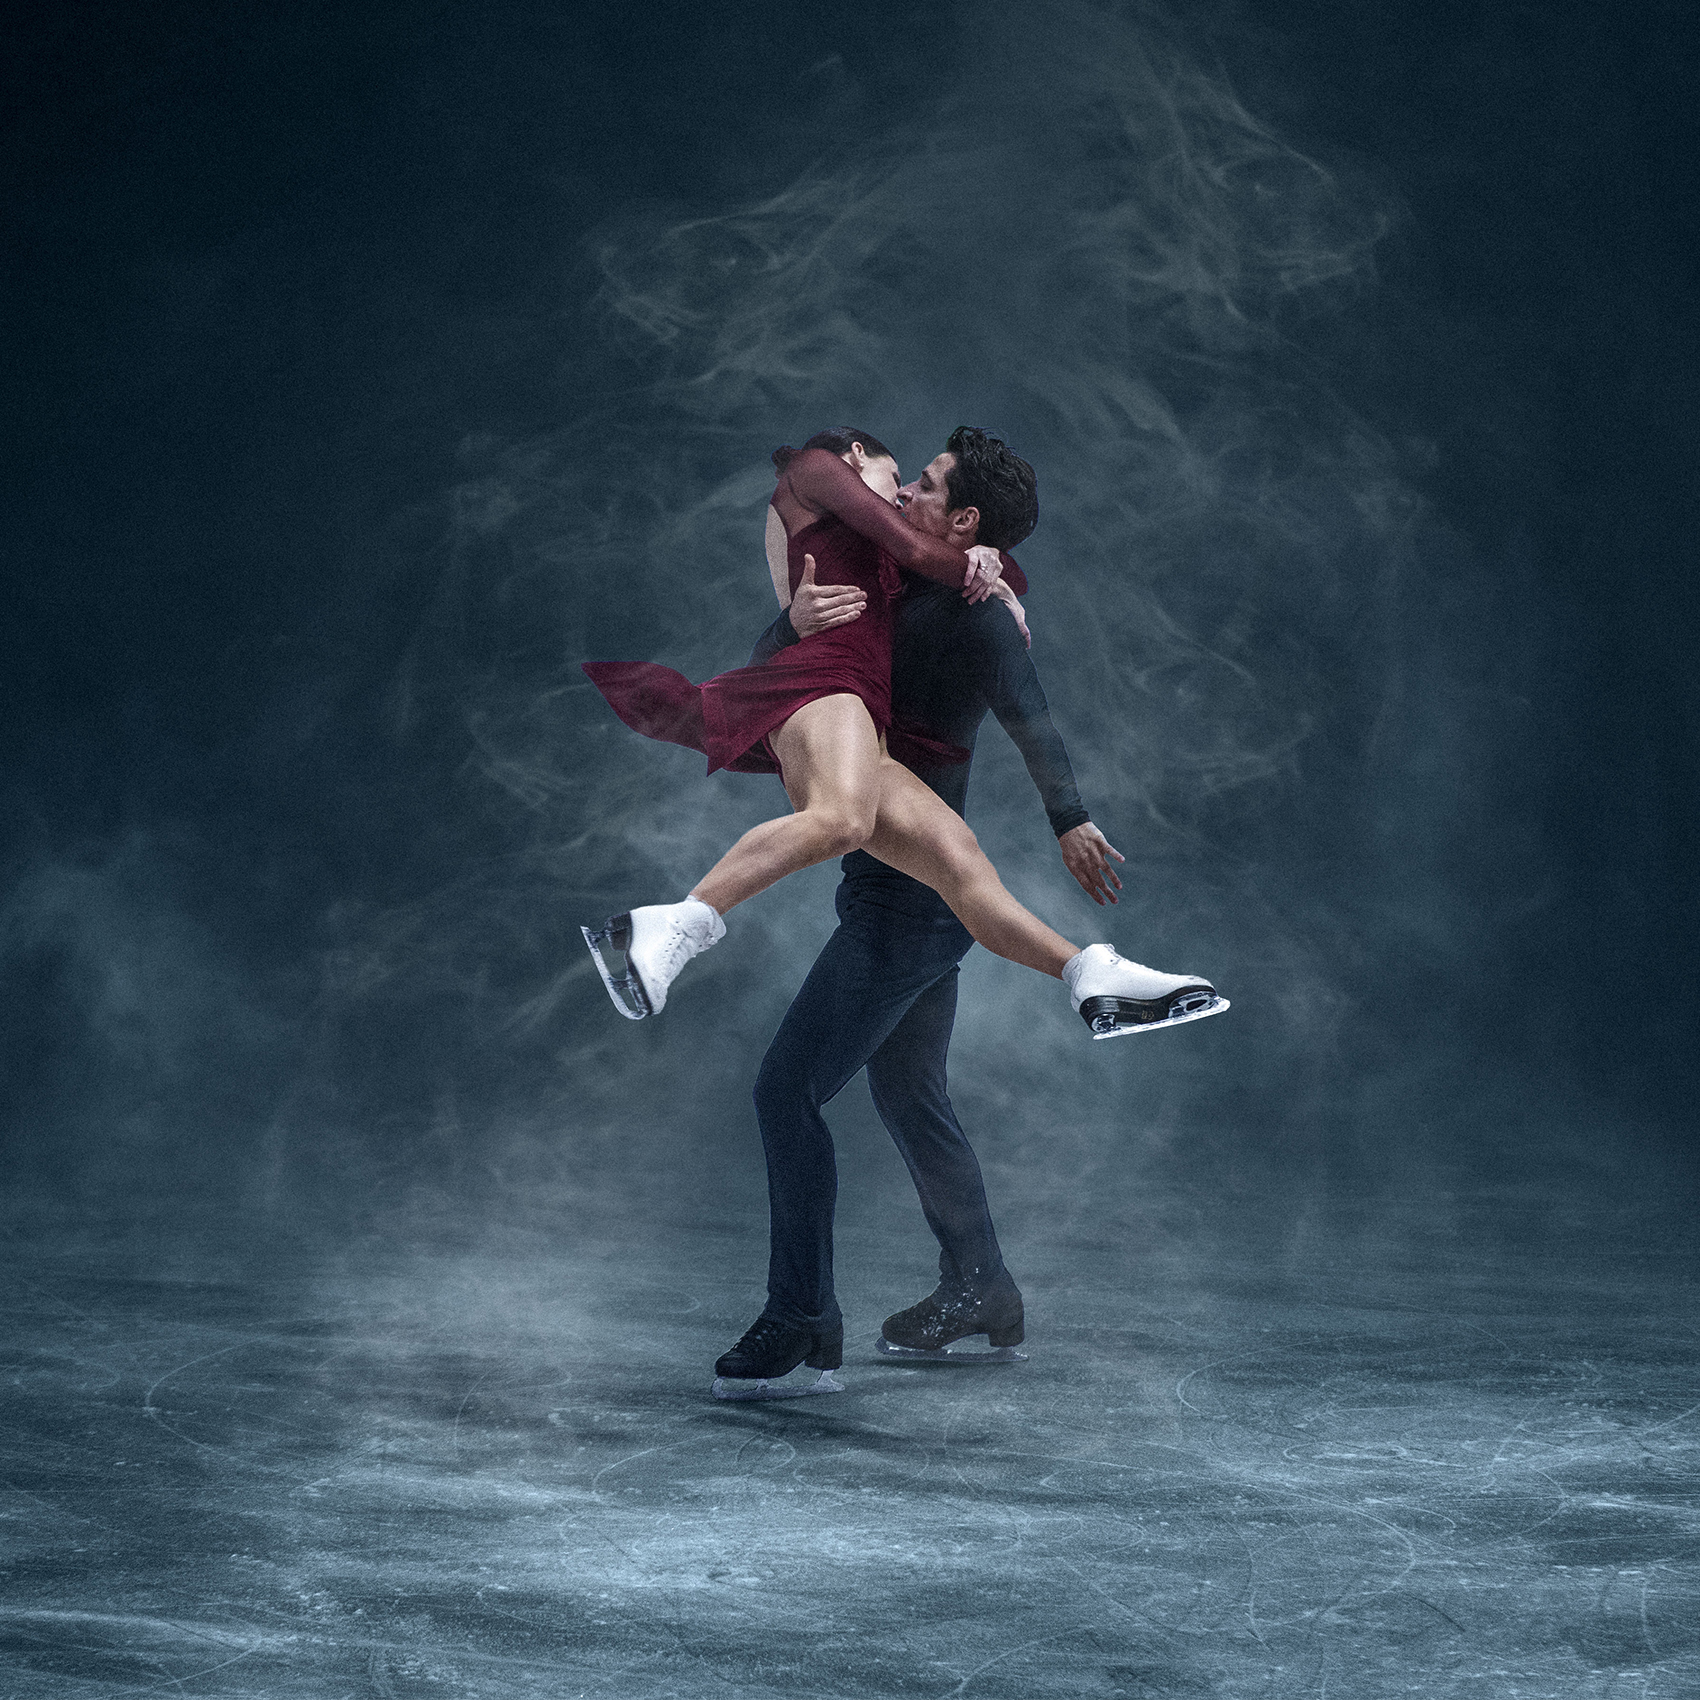 <small>Double Olympic gold medalists Tessa Virtue and Scott Moir.</small>